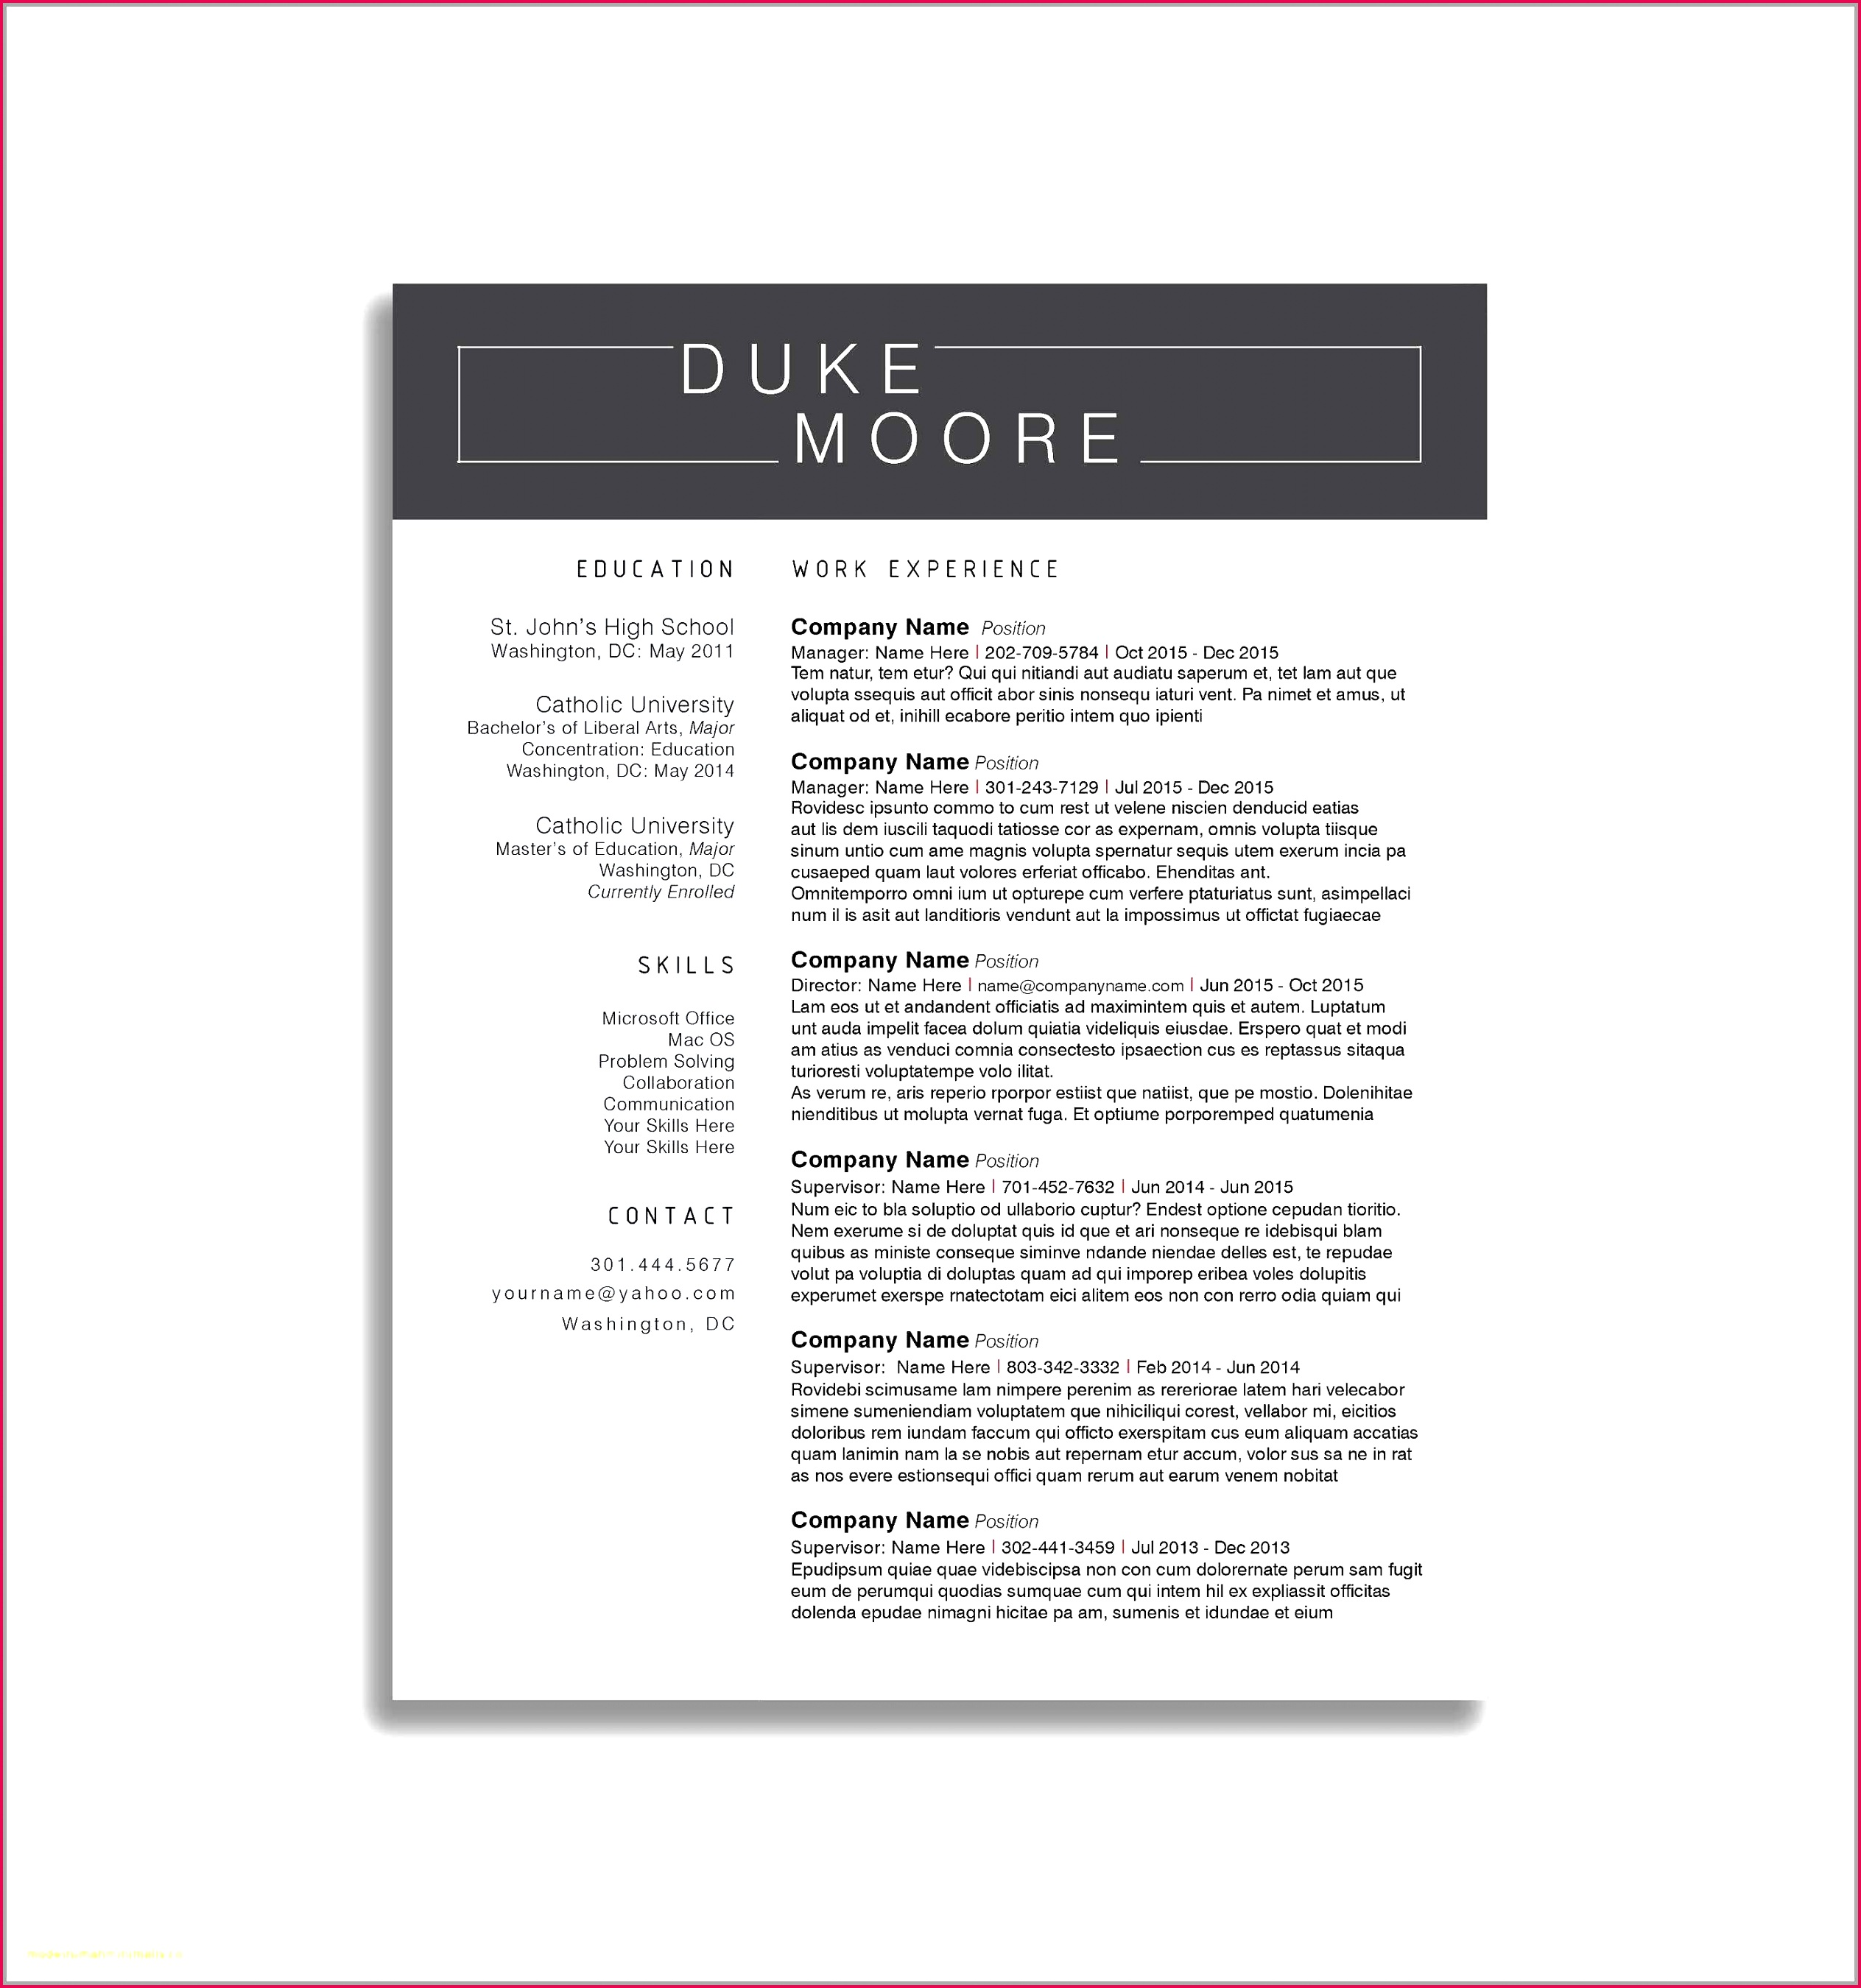 85 11 certificate template lovely award certificates templates 85 11 certificate template inspirational 25 awesome free football certificate templates uk of 85